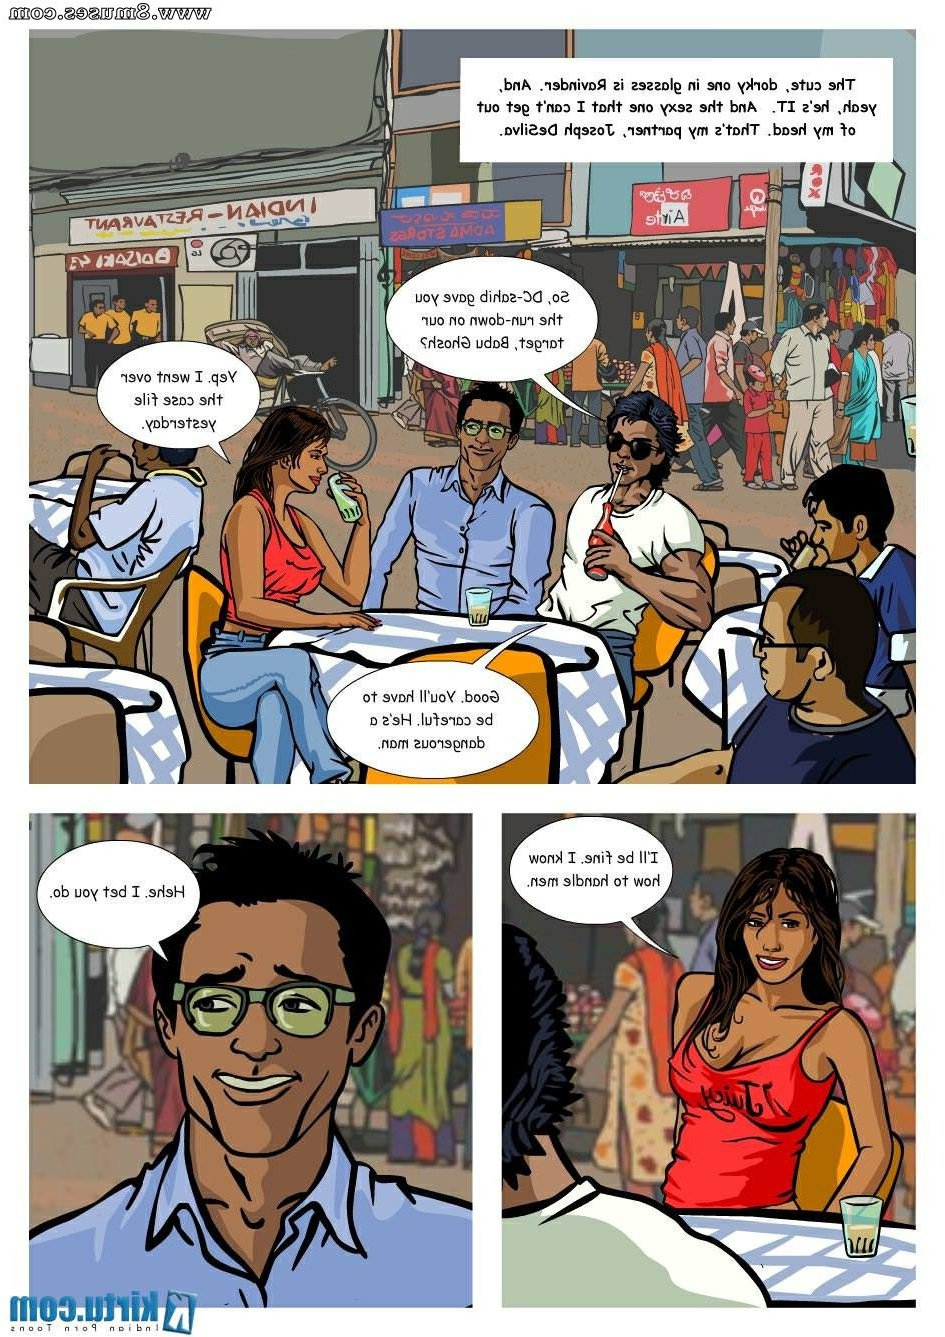 Kirtu_com-Comics/Priya-Rao-The-Encounter-Specialist/Issue-1 Priya_Rao_-_The_Encounter_Specialist_-_Issue_1_10.jpg